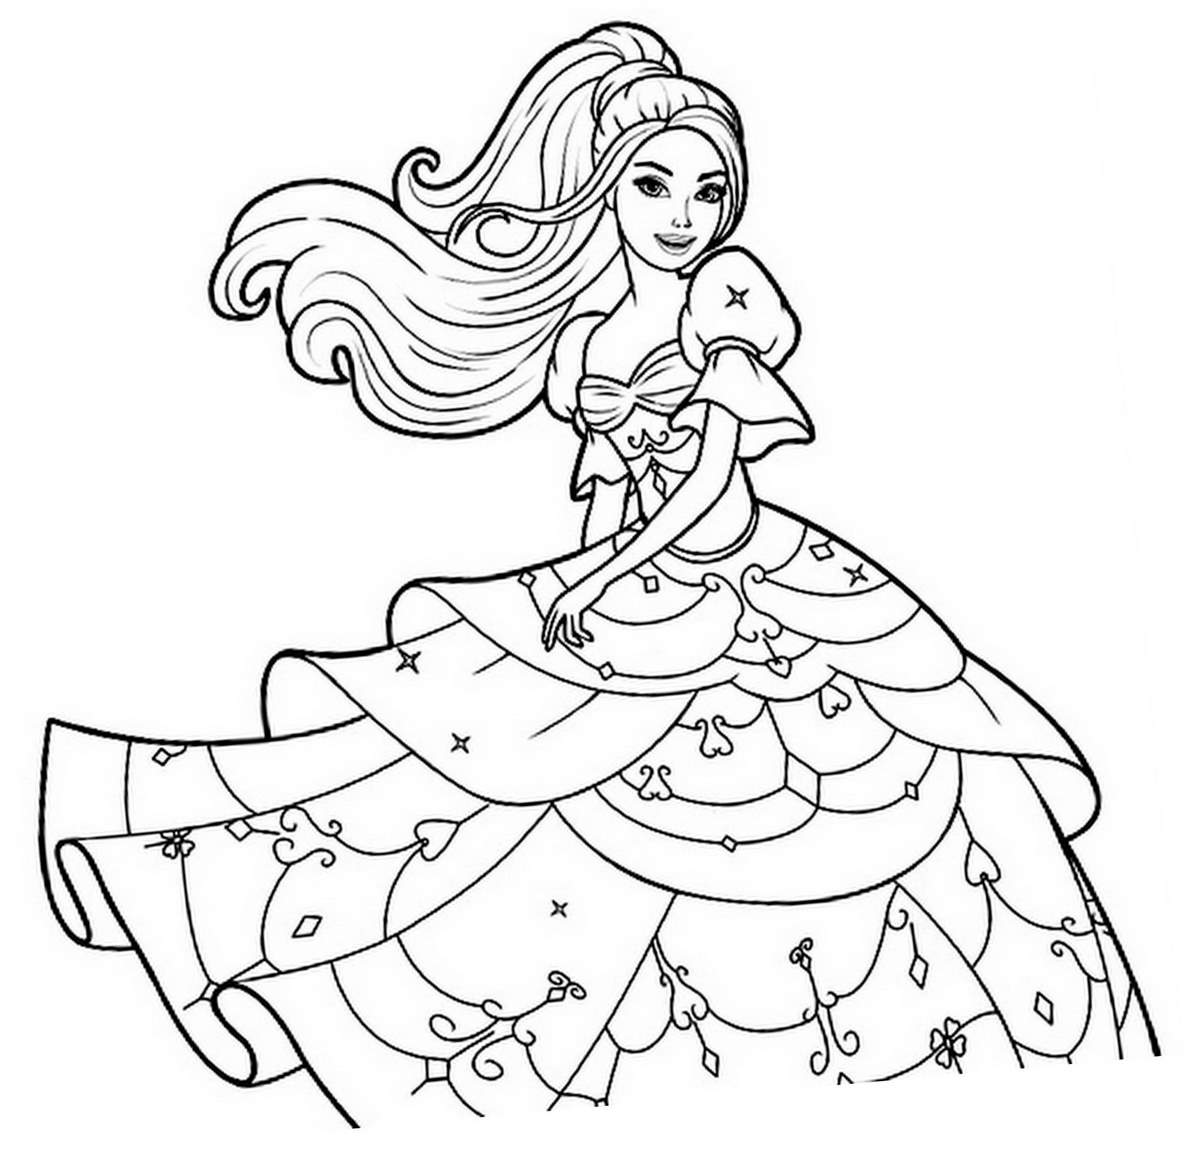 coloring outline for kids pony coloring pages  best coloring pages for kids for outline coloring kids